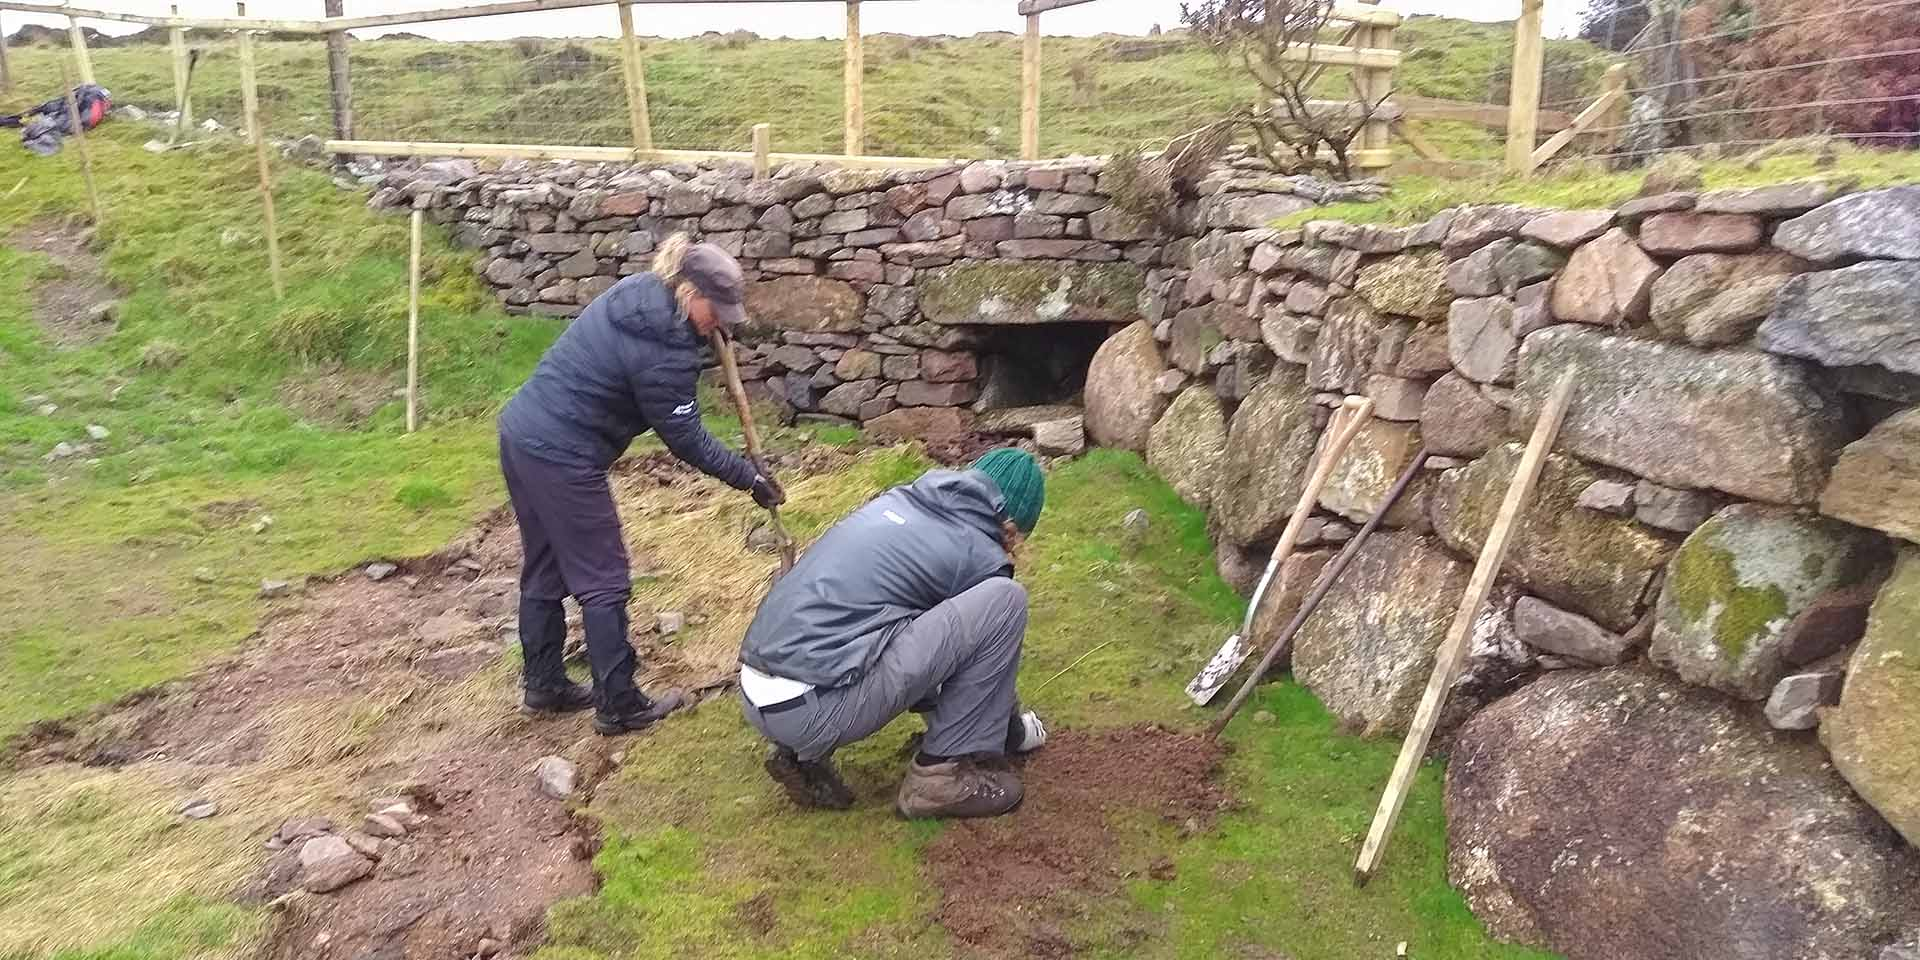 Two people repairing a stone wall